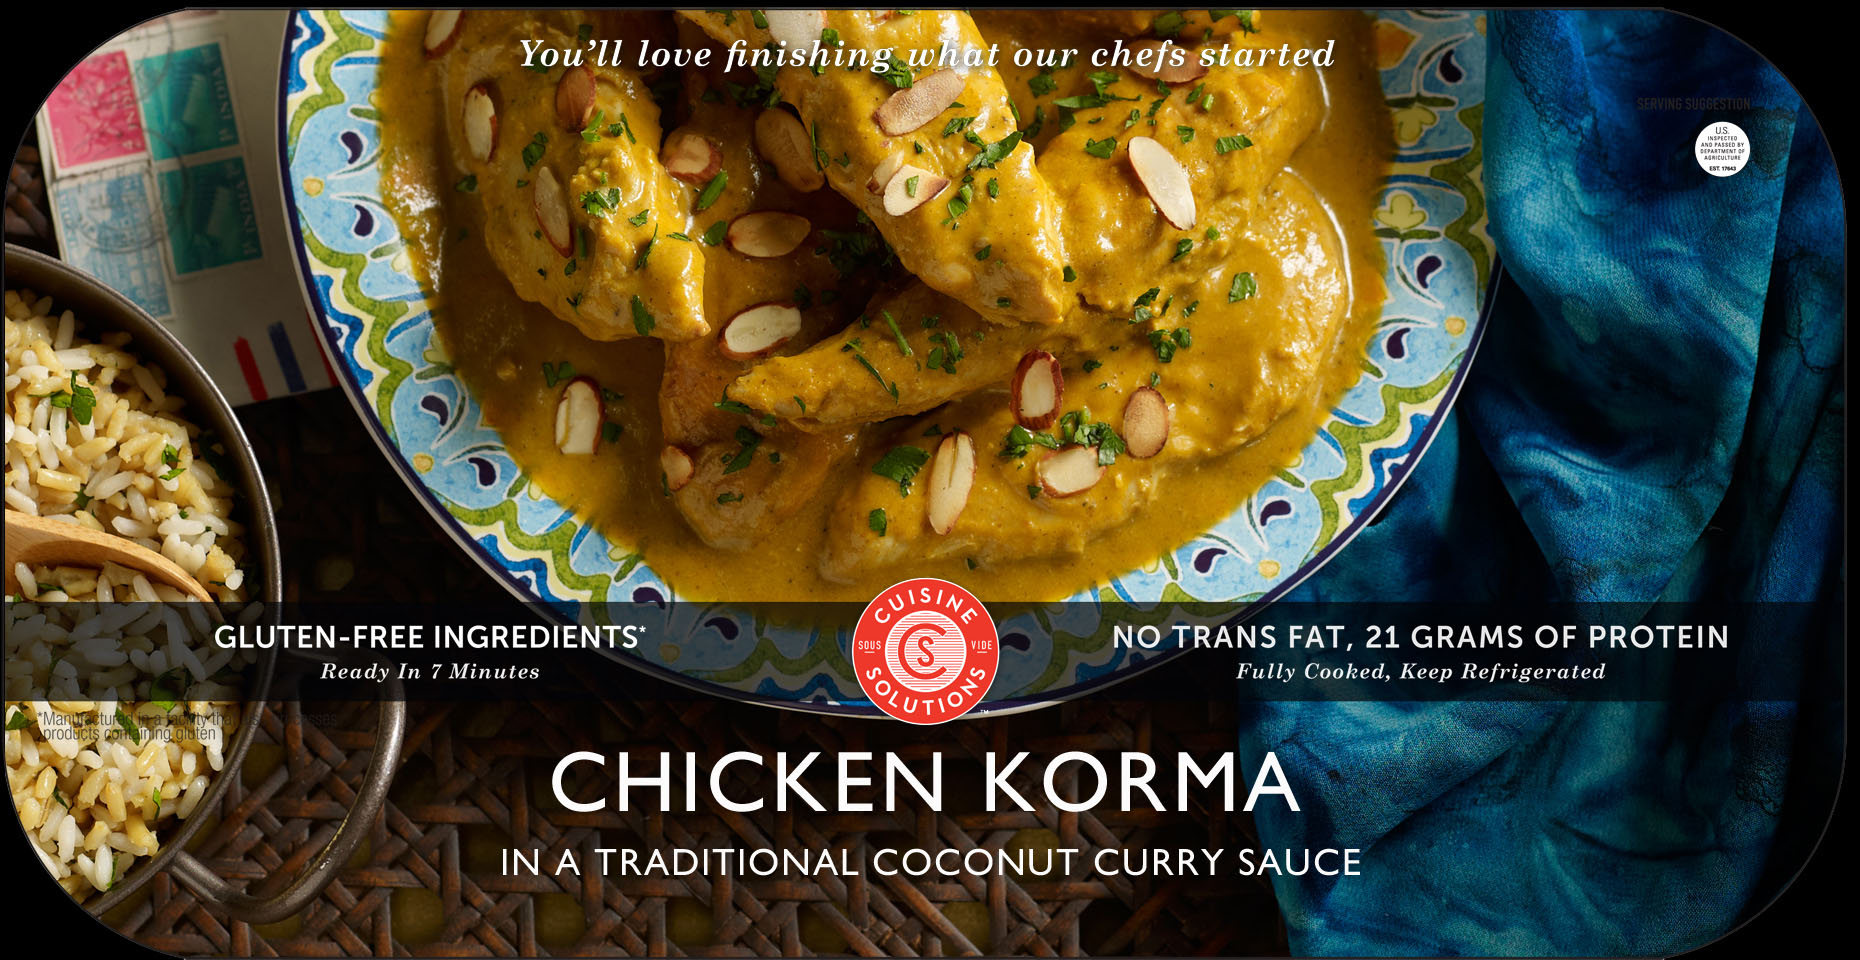 Food Photography_Food Packaging Photography_Korma Chicken